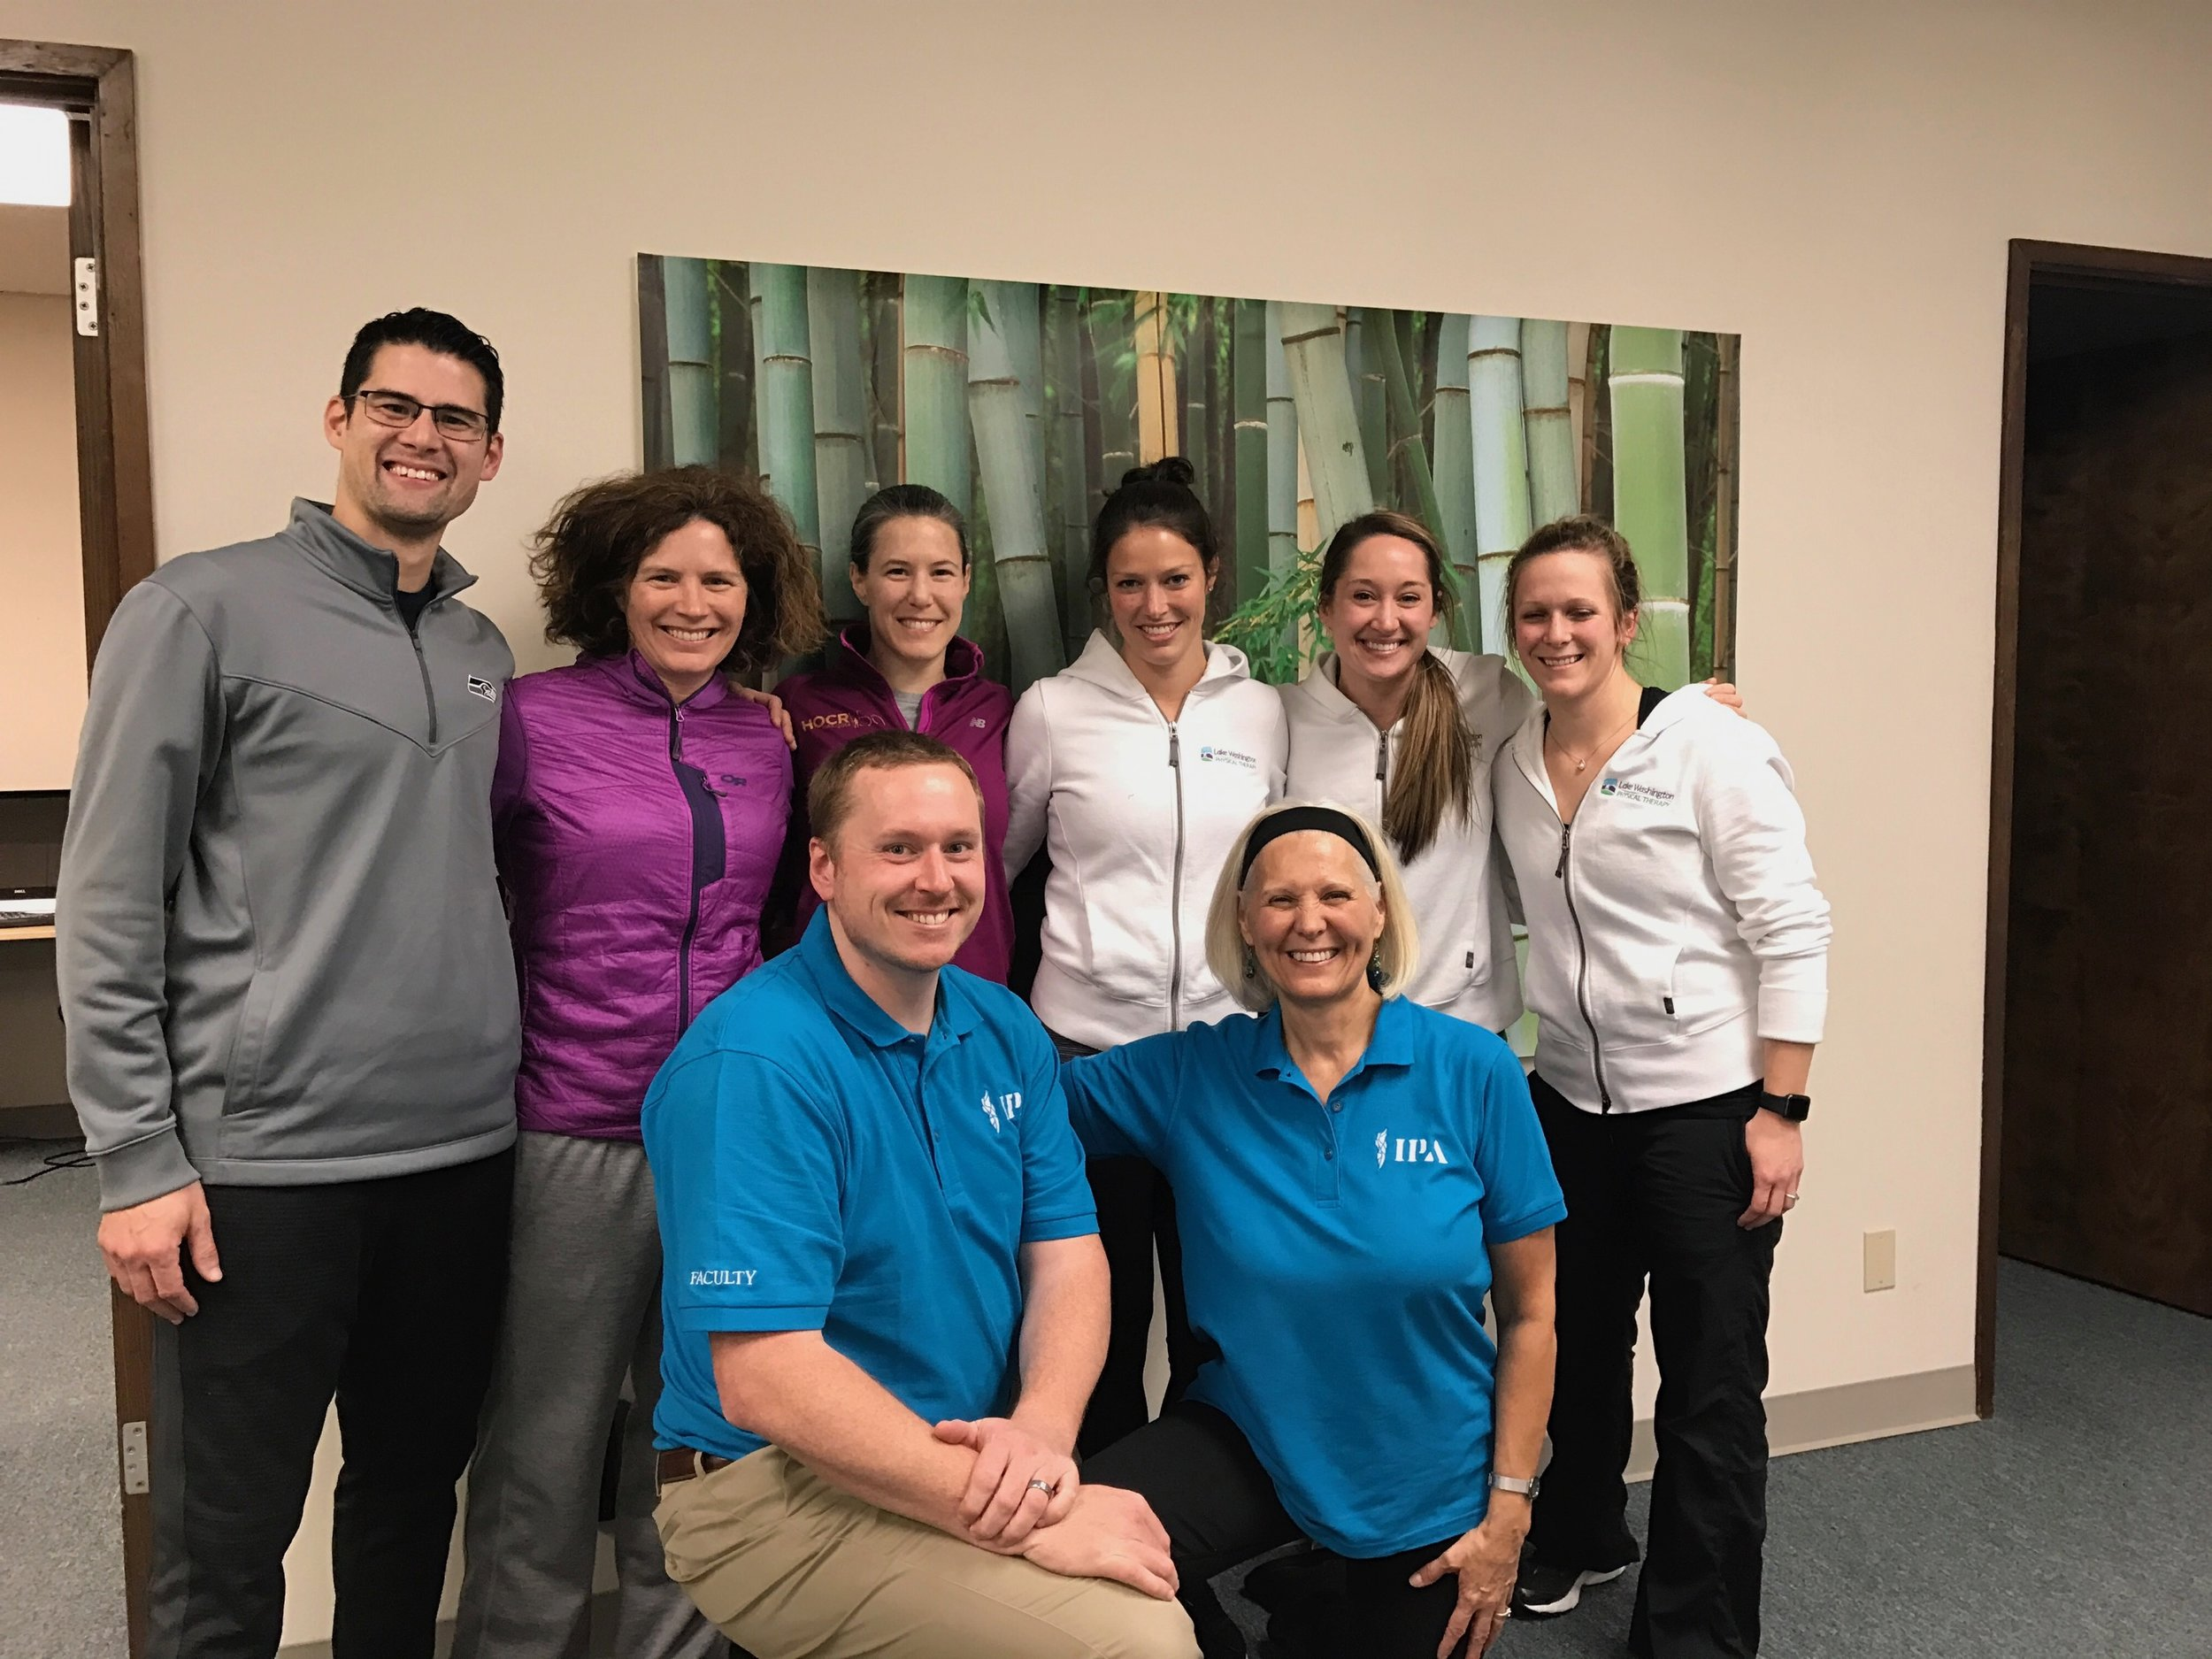 Institute of Physical Arts (IPA) Course - The LWPT team attended level 1 IPA PNF course February 2017